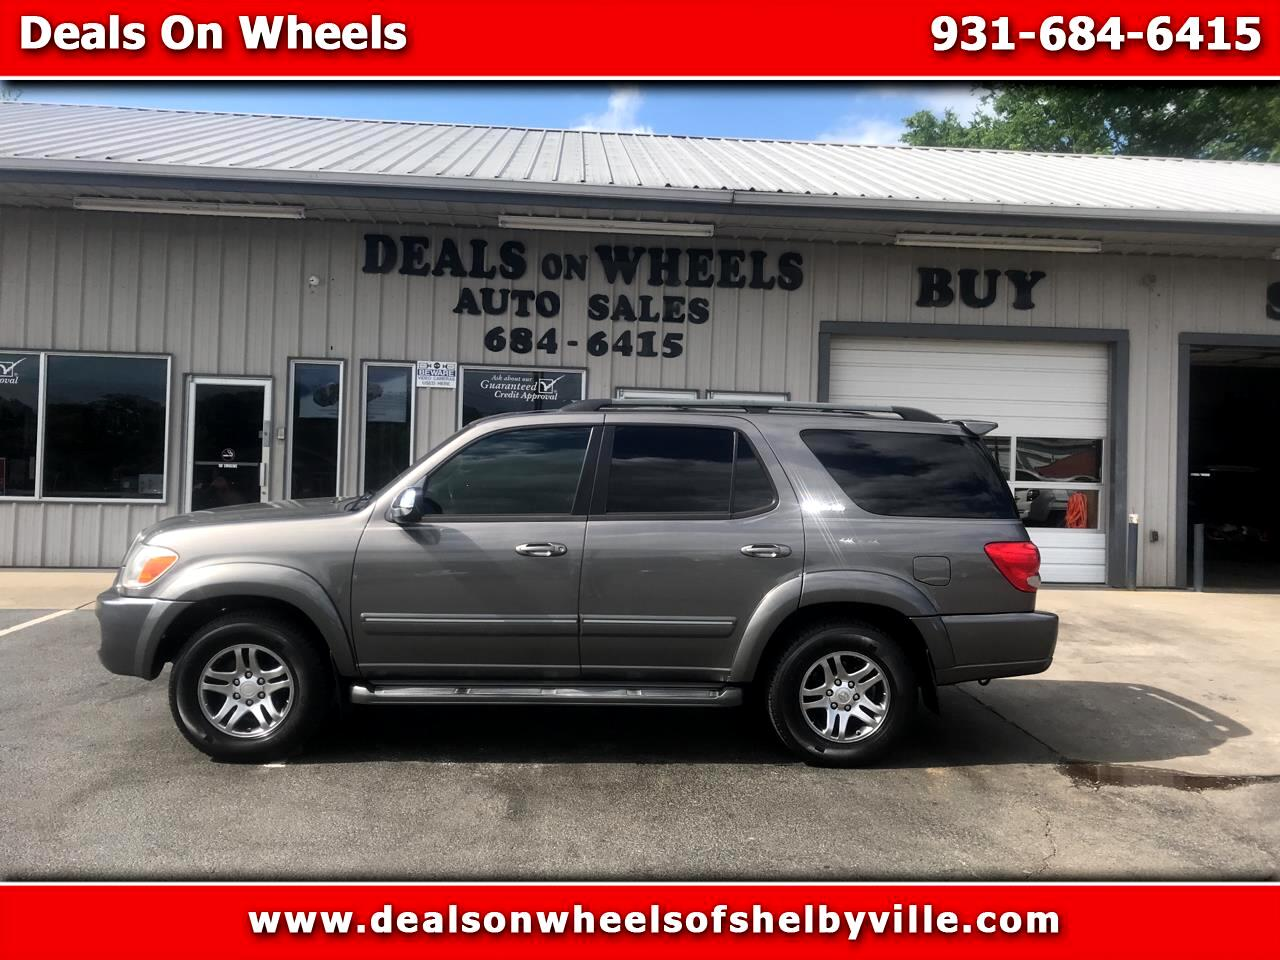 2007 Toyota Sequoia 2WD 4dr Limited (Natl)